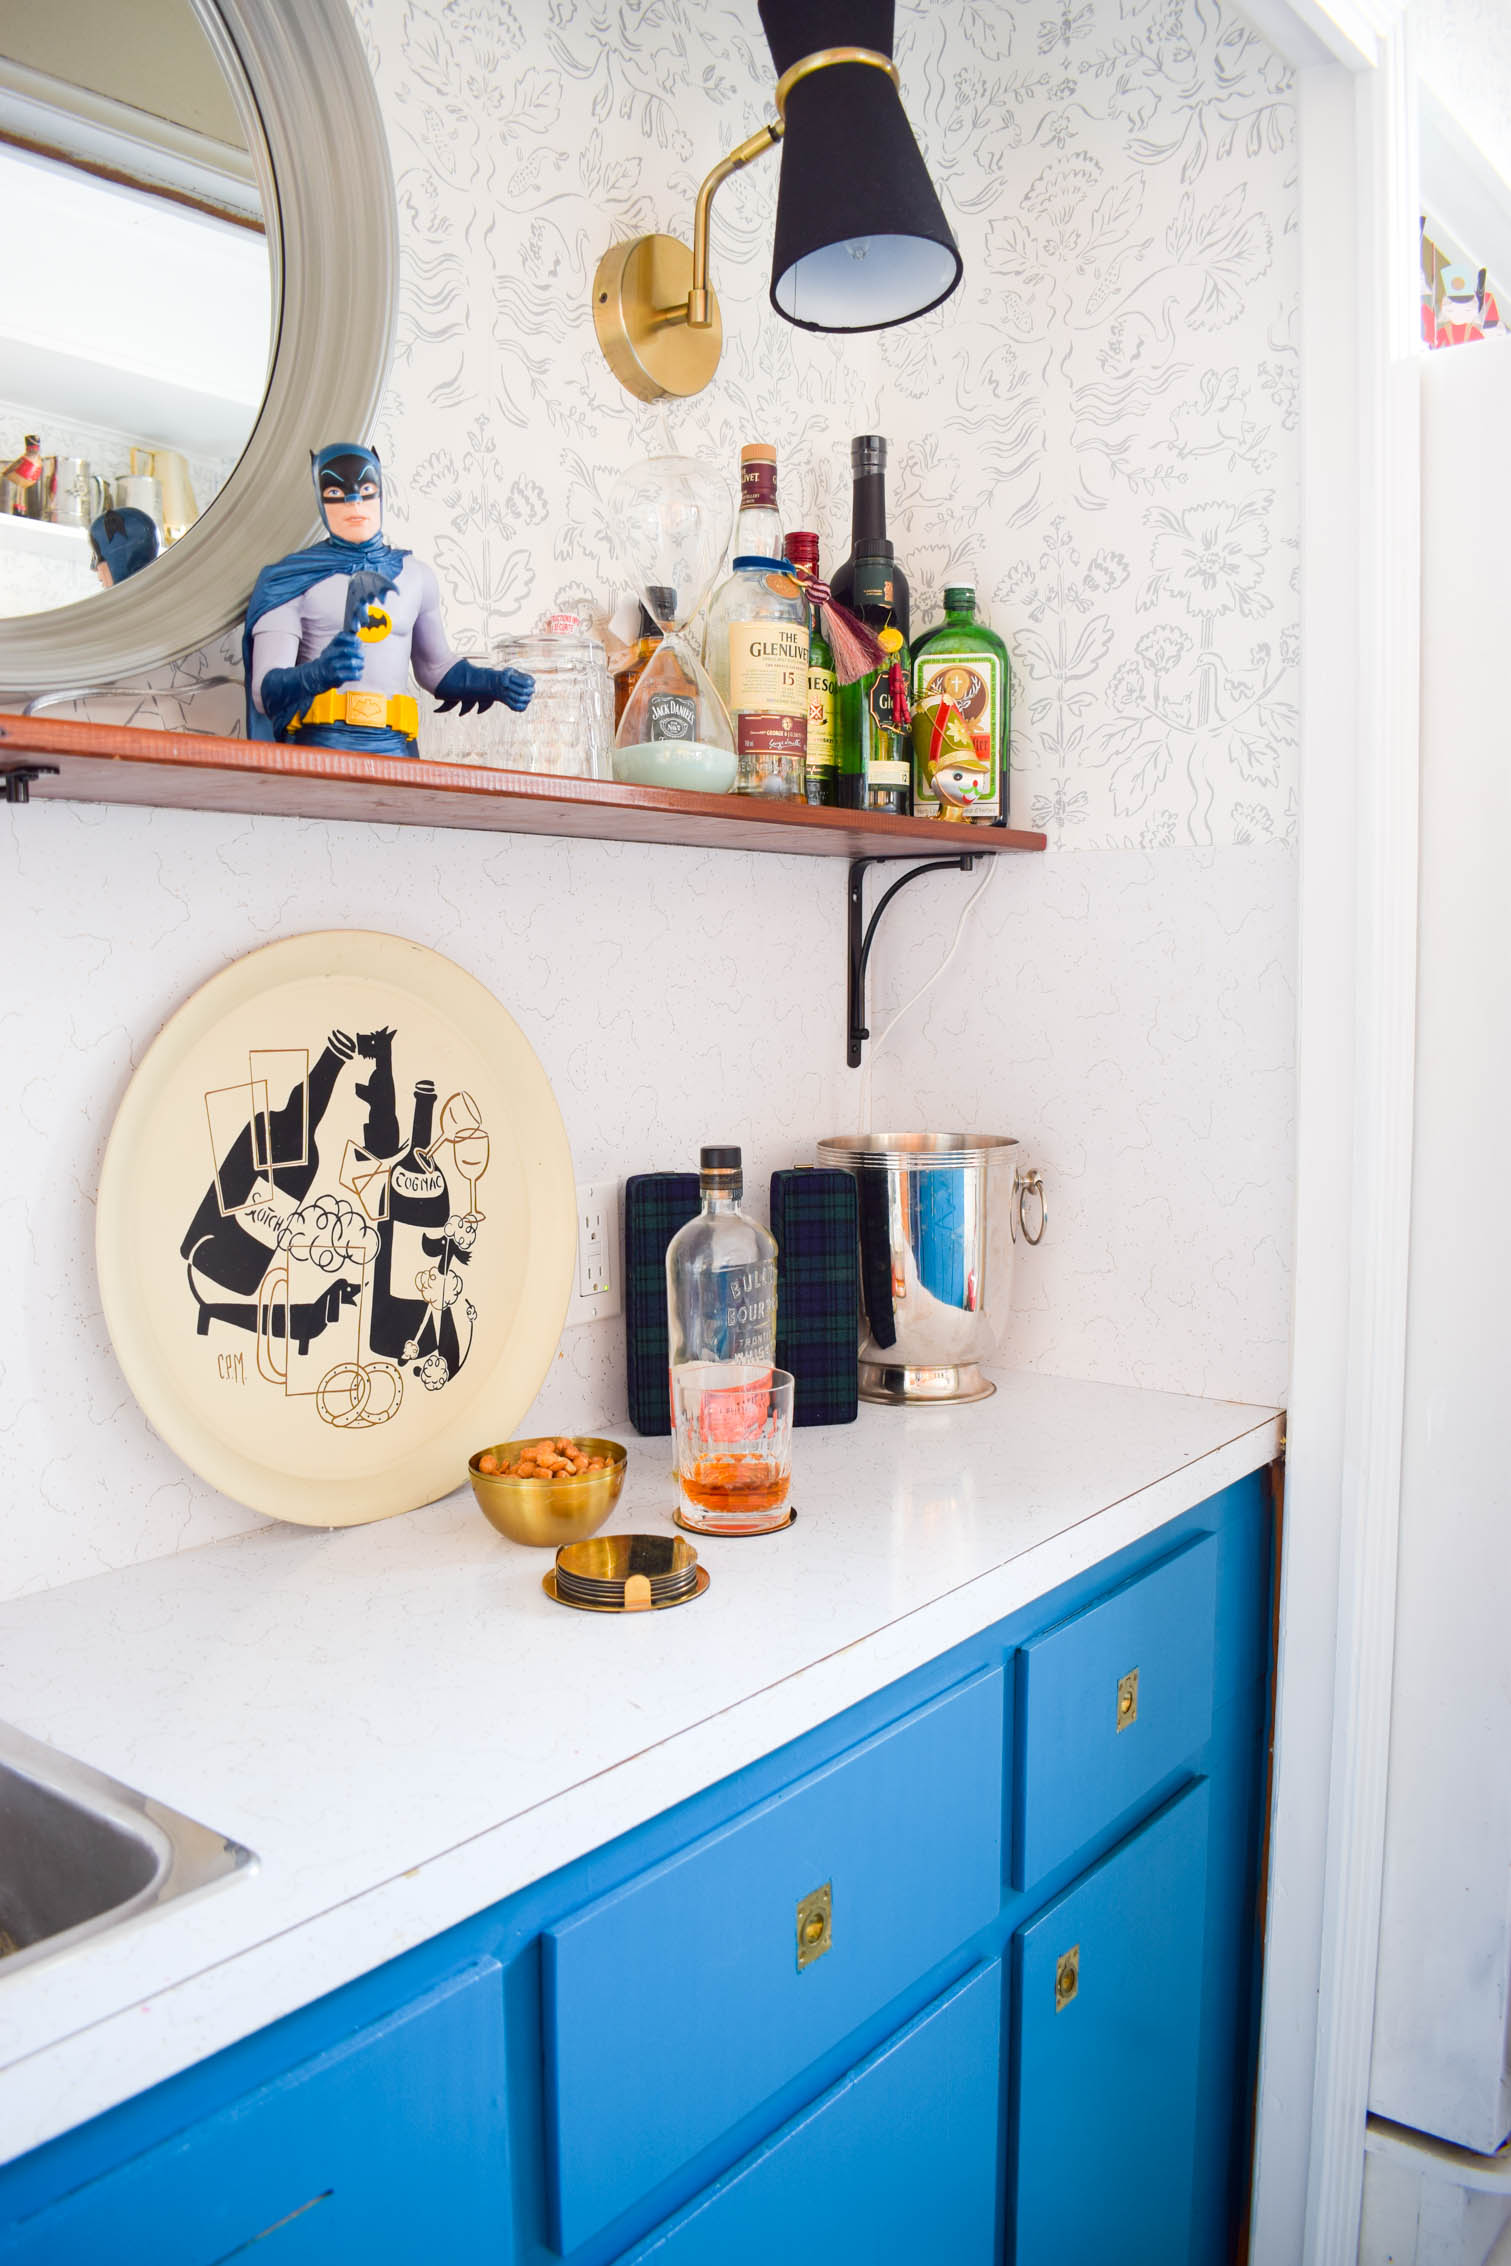 Our basement bar was a nightmare from the 70s, and now it's a clean modern space. With a few budget friendly updates we took it from drab to fab. Freshly painted cabinets, peel and stick floor tiles, and new wallpaper are just what the space needed!